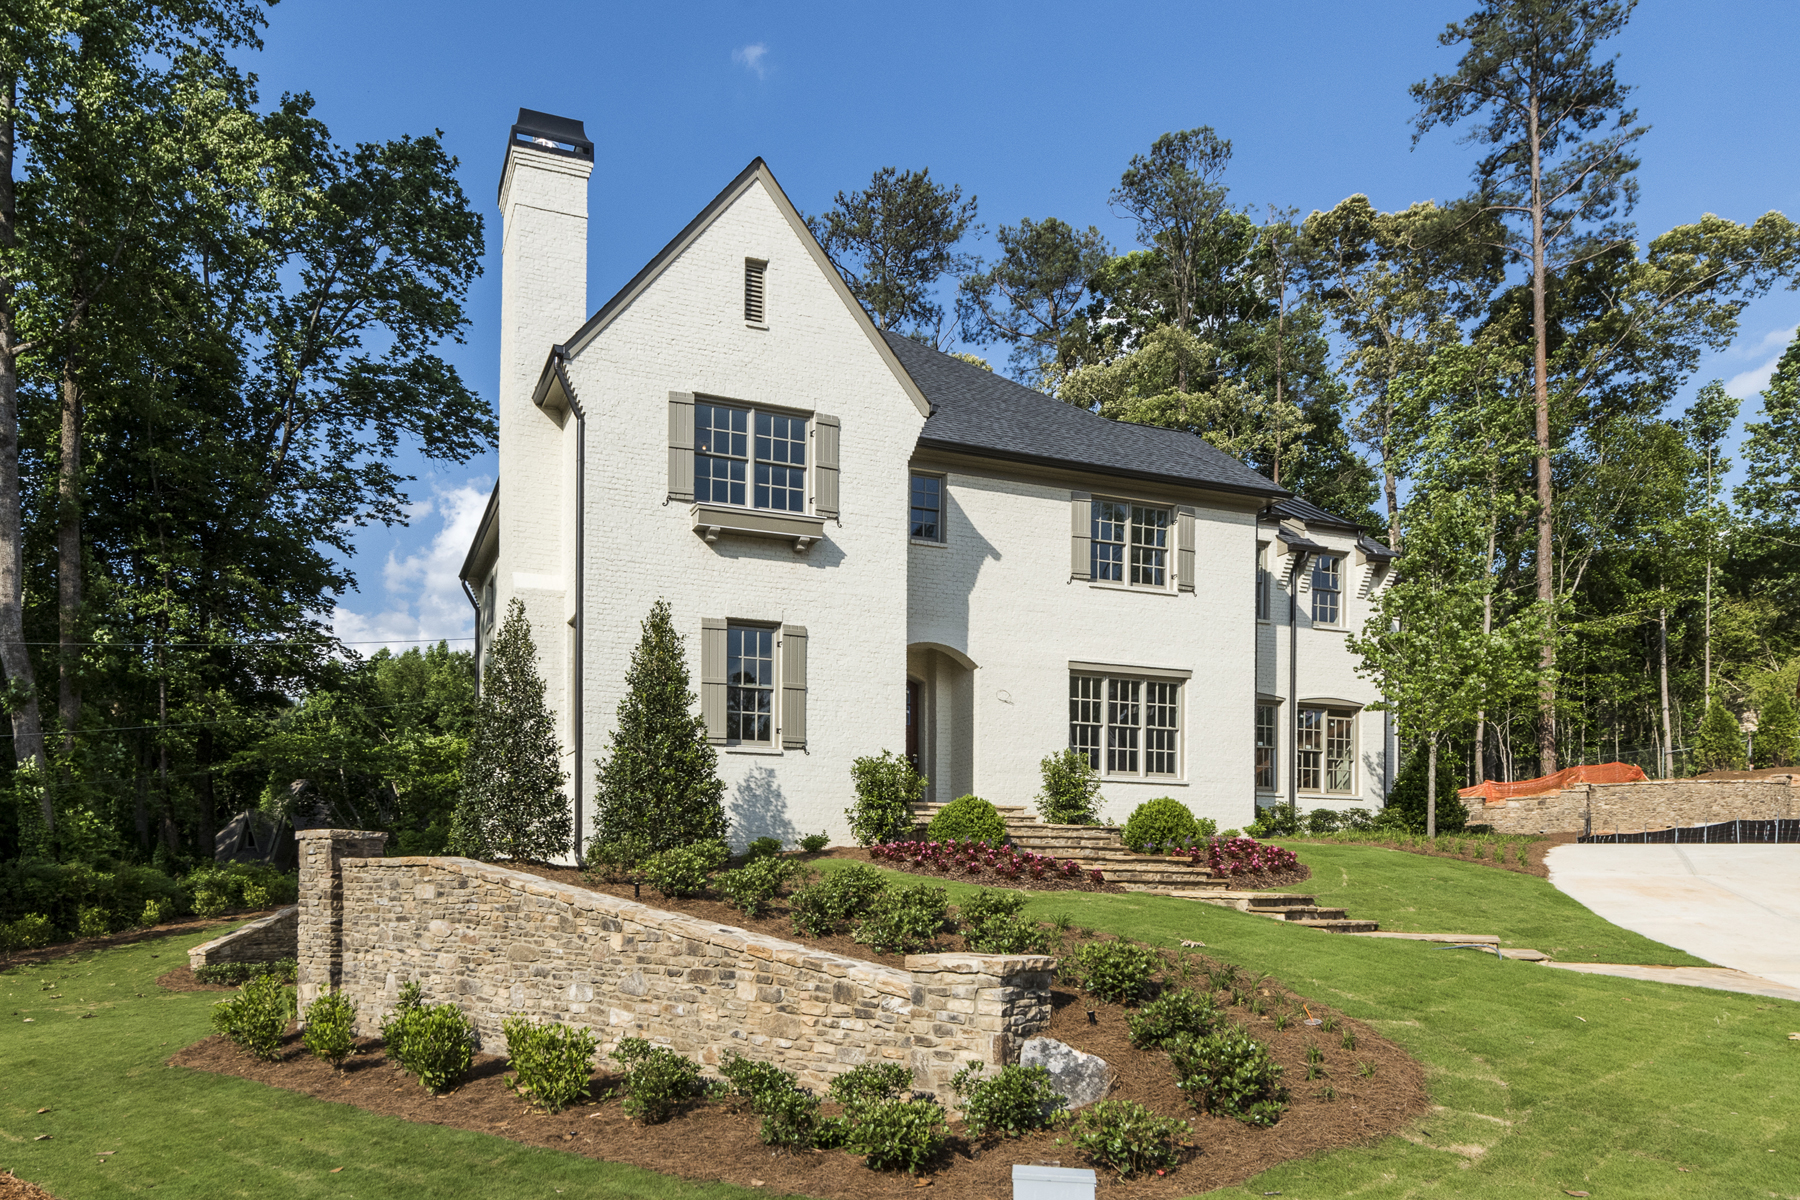 Moradia para Venda às Amazing New Construction With Walkout Backyard And Attention To Detail 512 Ivy Preserve Court Atlanta, Geórgia 30342 Estados Unidos